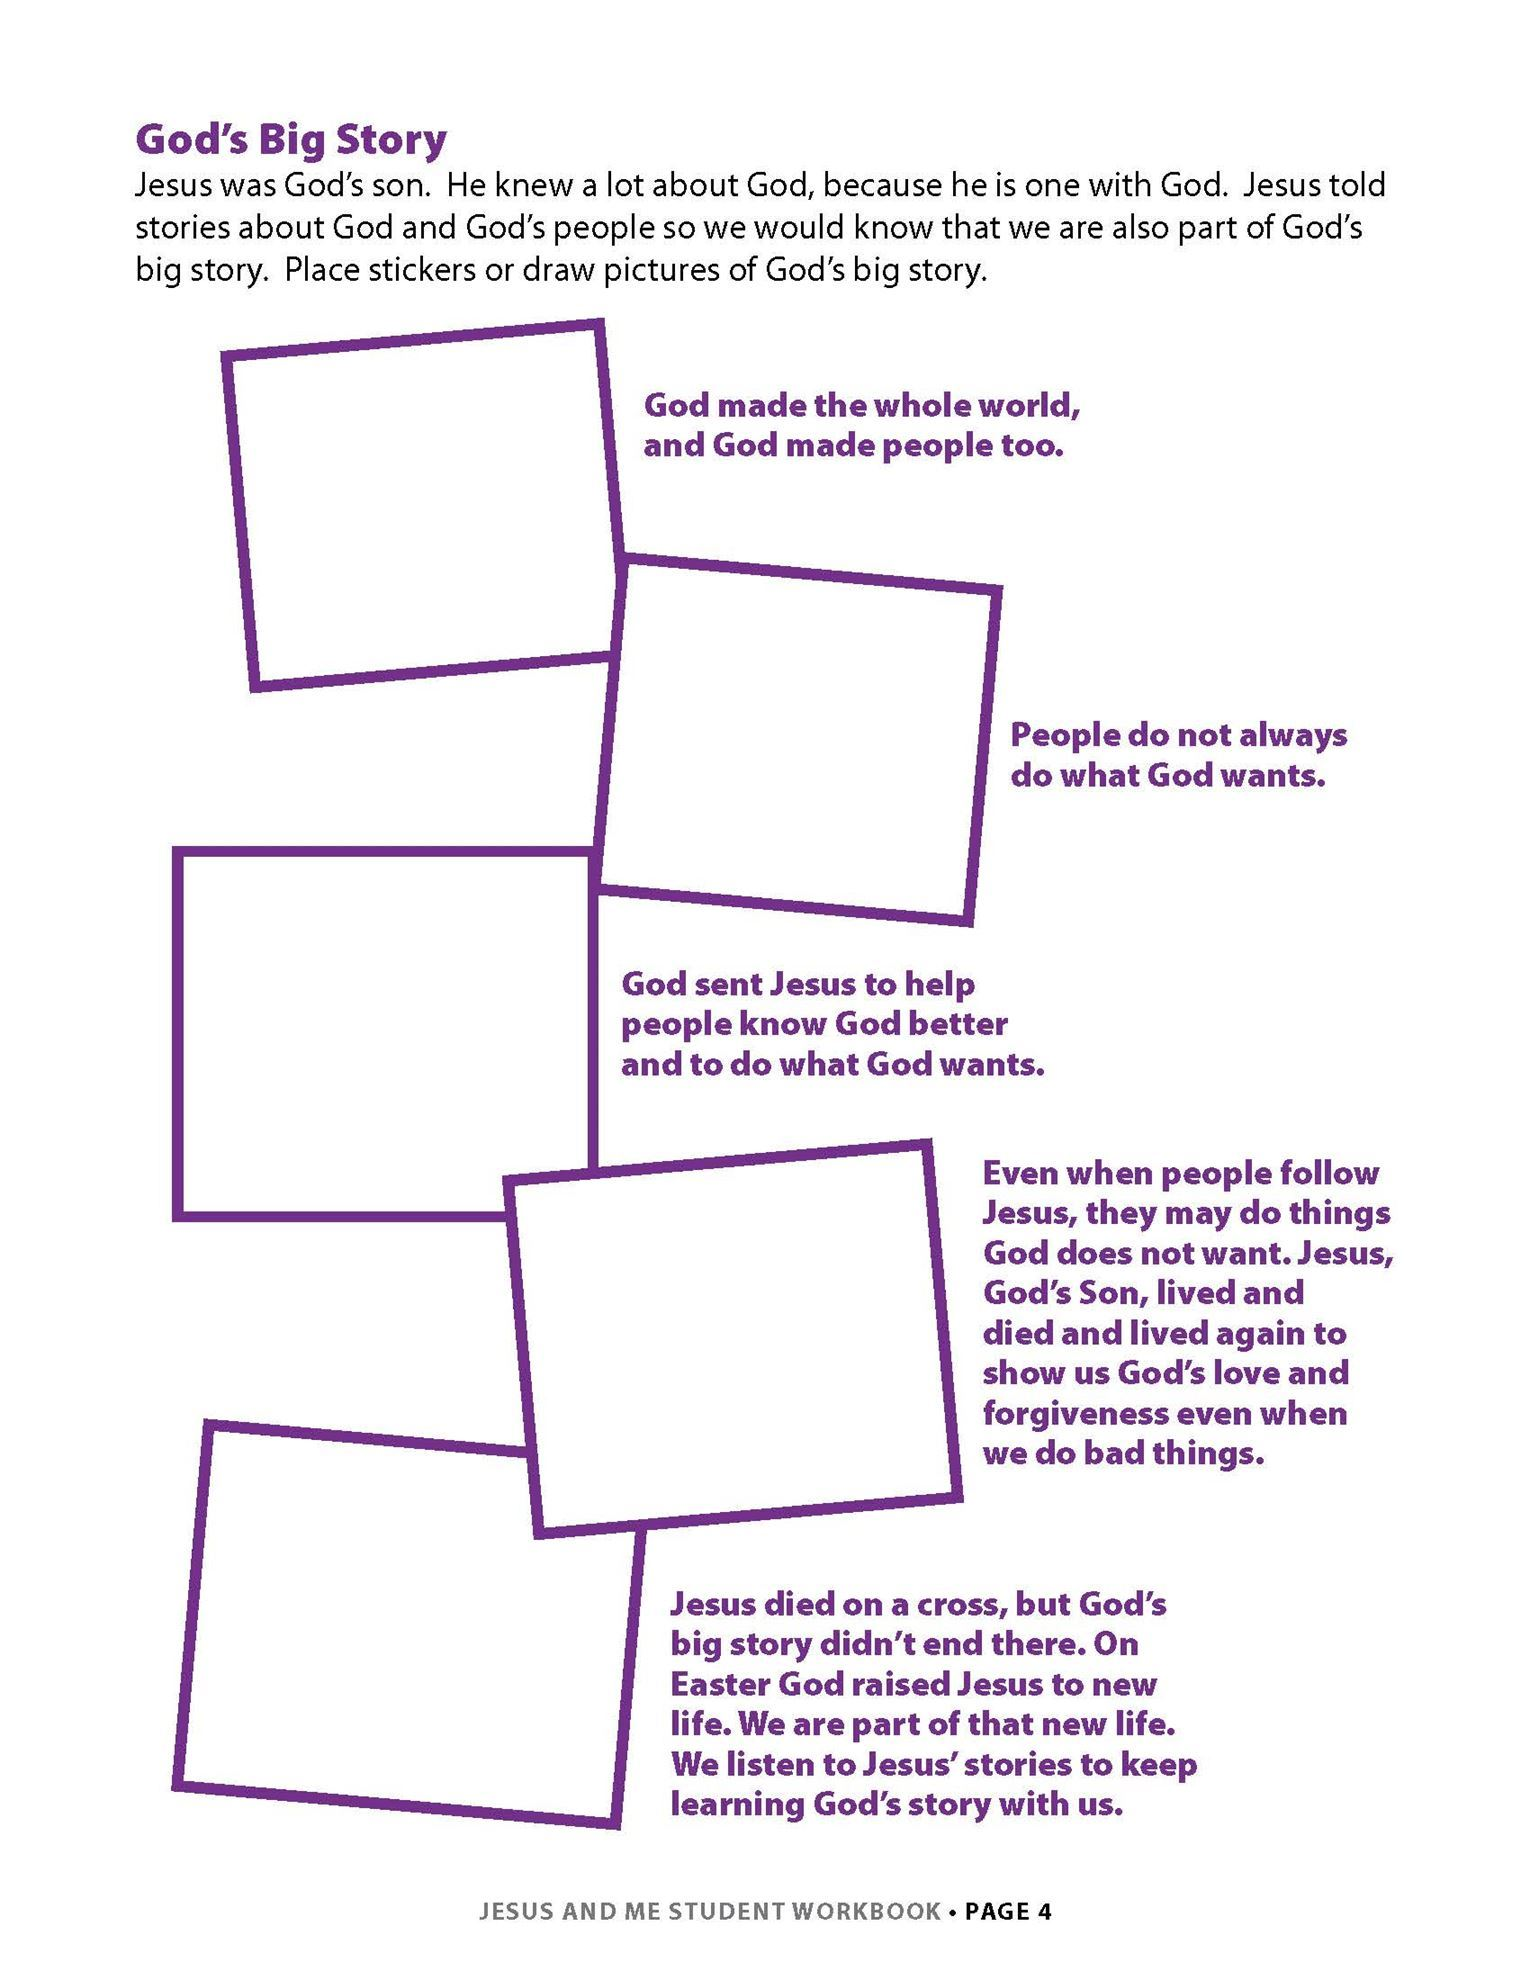 Jesus and Me Student Workbook Lesson 1 Page 2